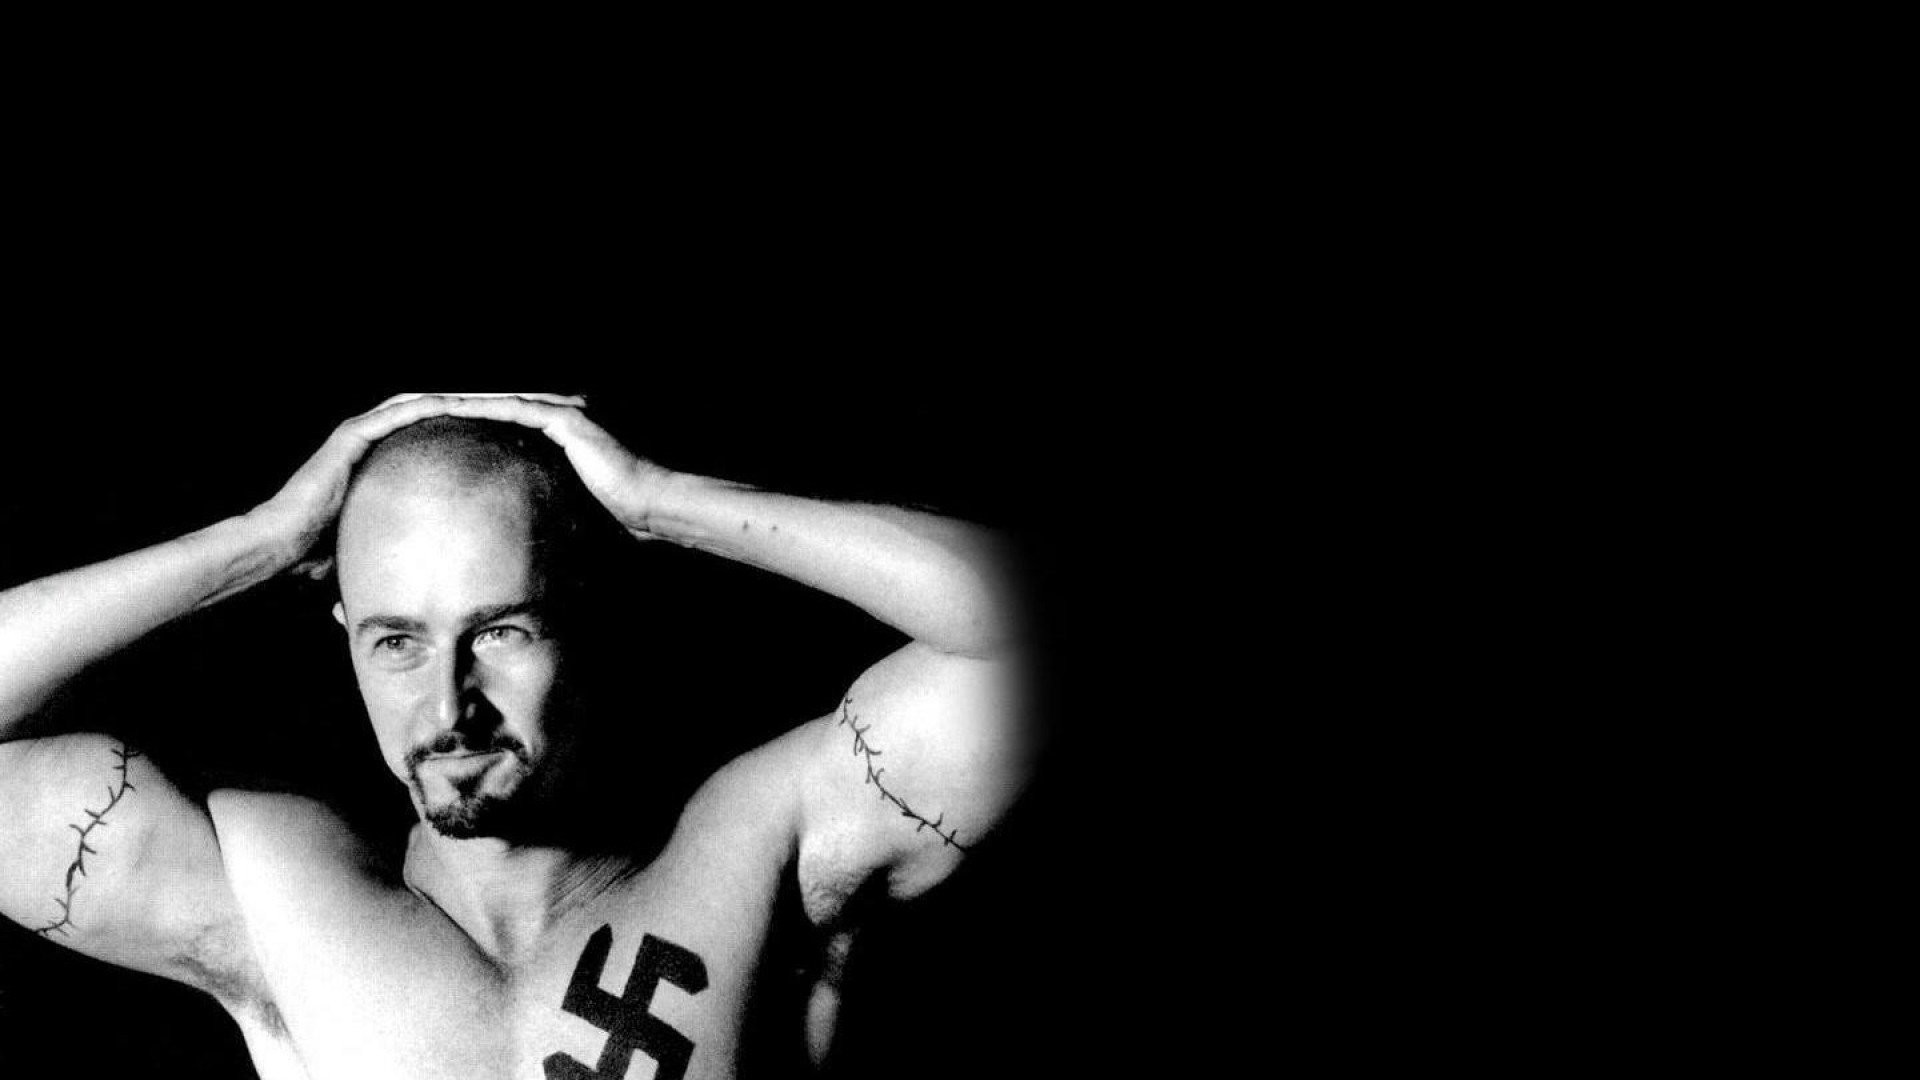 1920x1080 Movie - American History X Ed Norton Nazi Tattoo Wallpaper